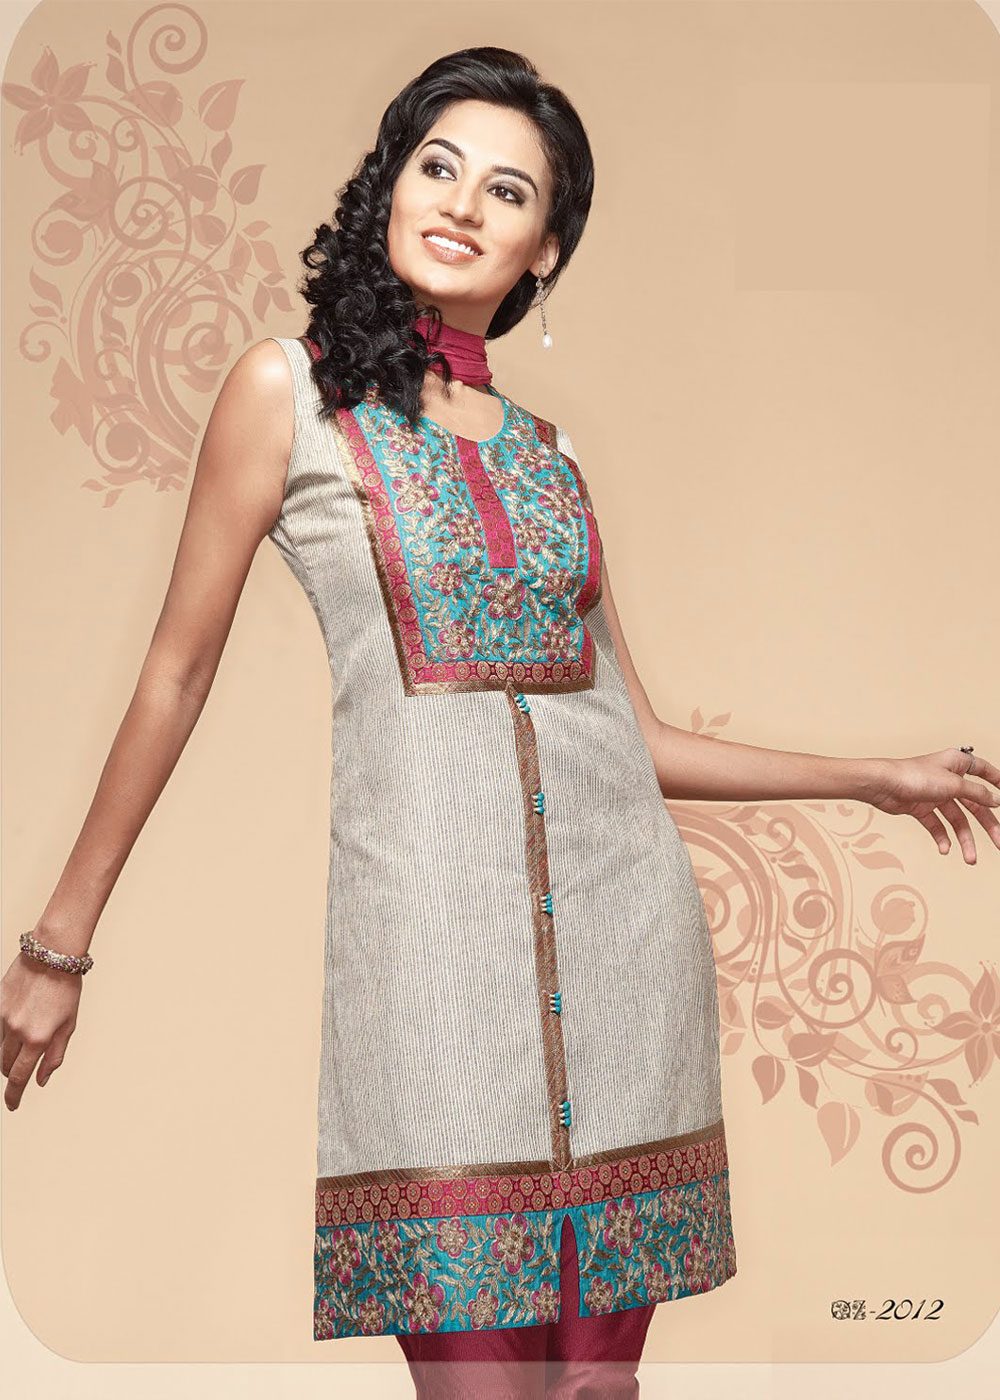 Salwar Kameez Designs 2013 – Salwar Kameez Fashion Trends